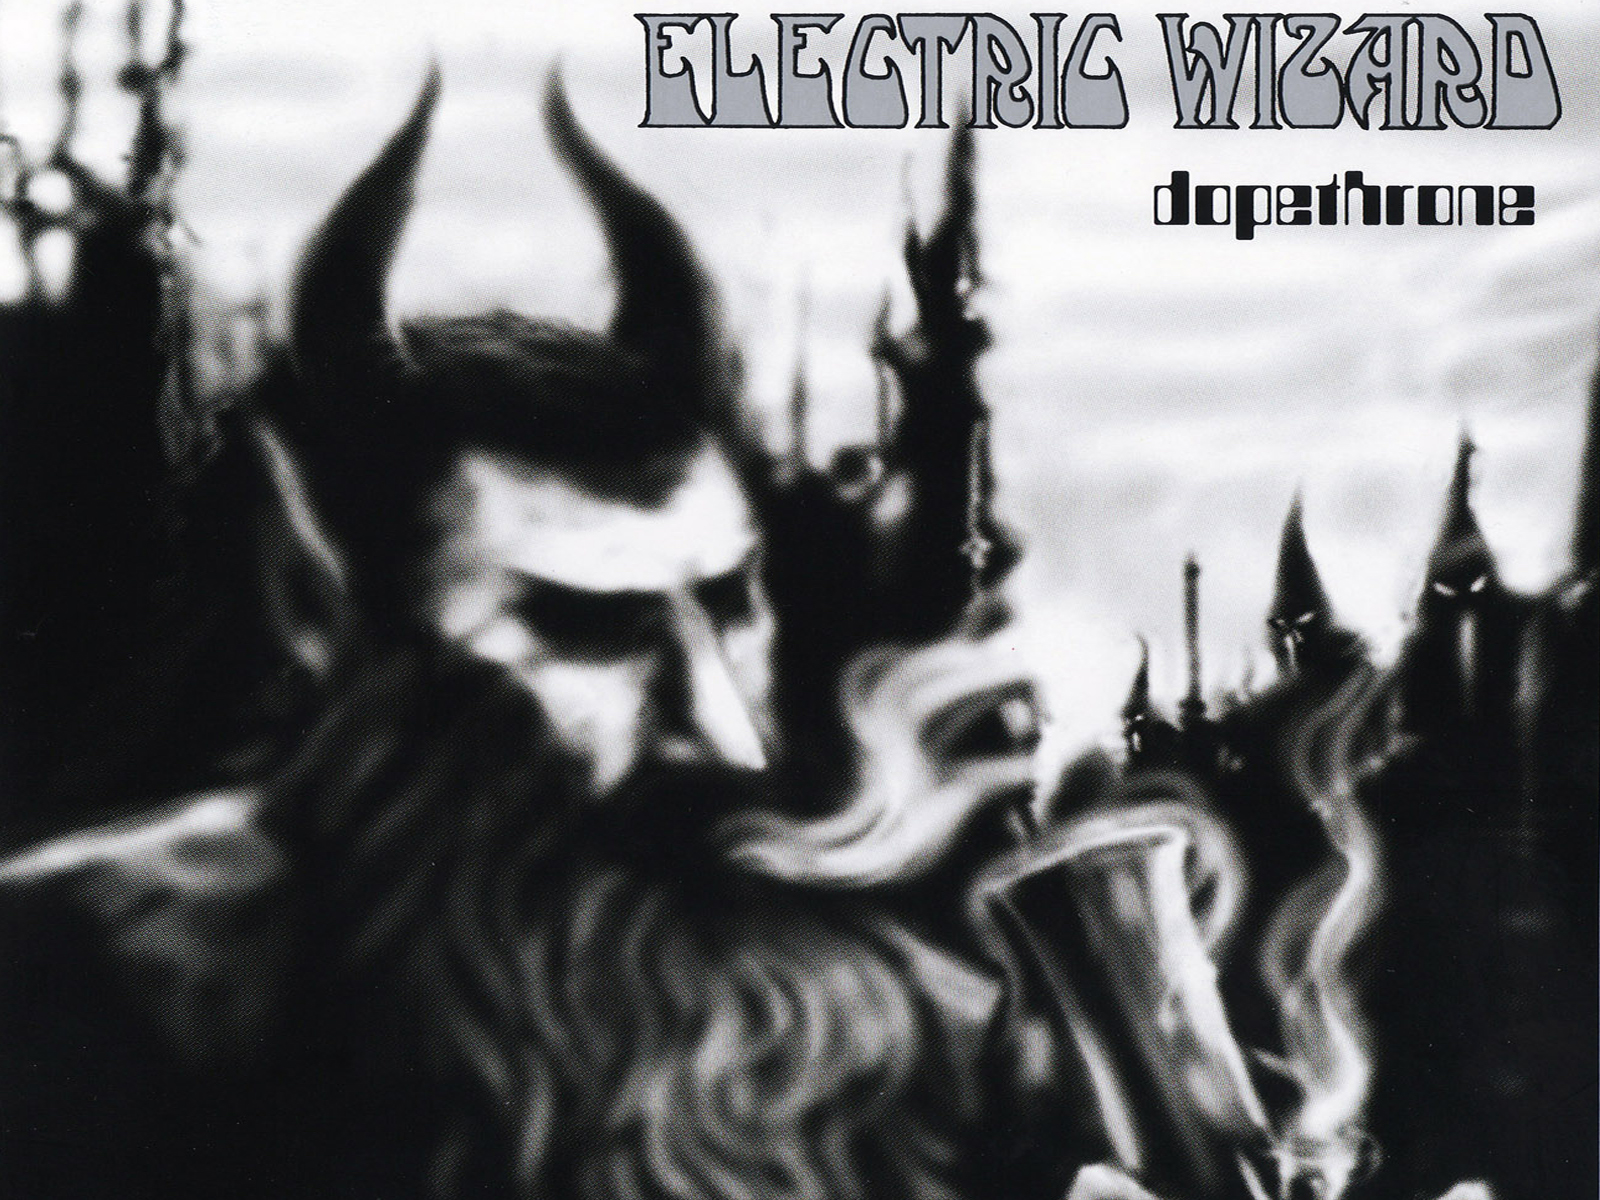 1 electric wizard hd wallpapers